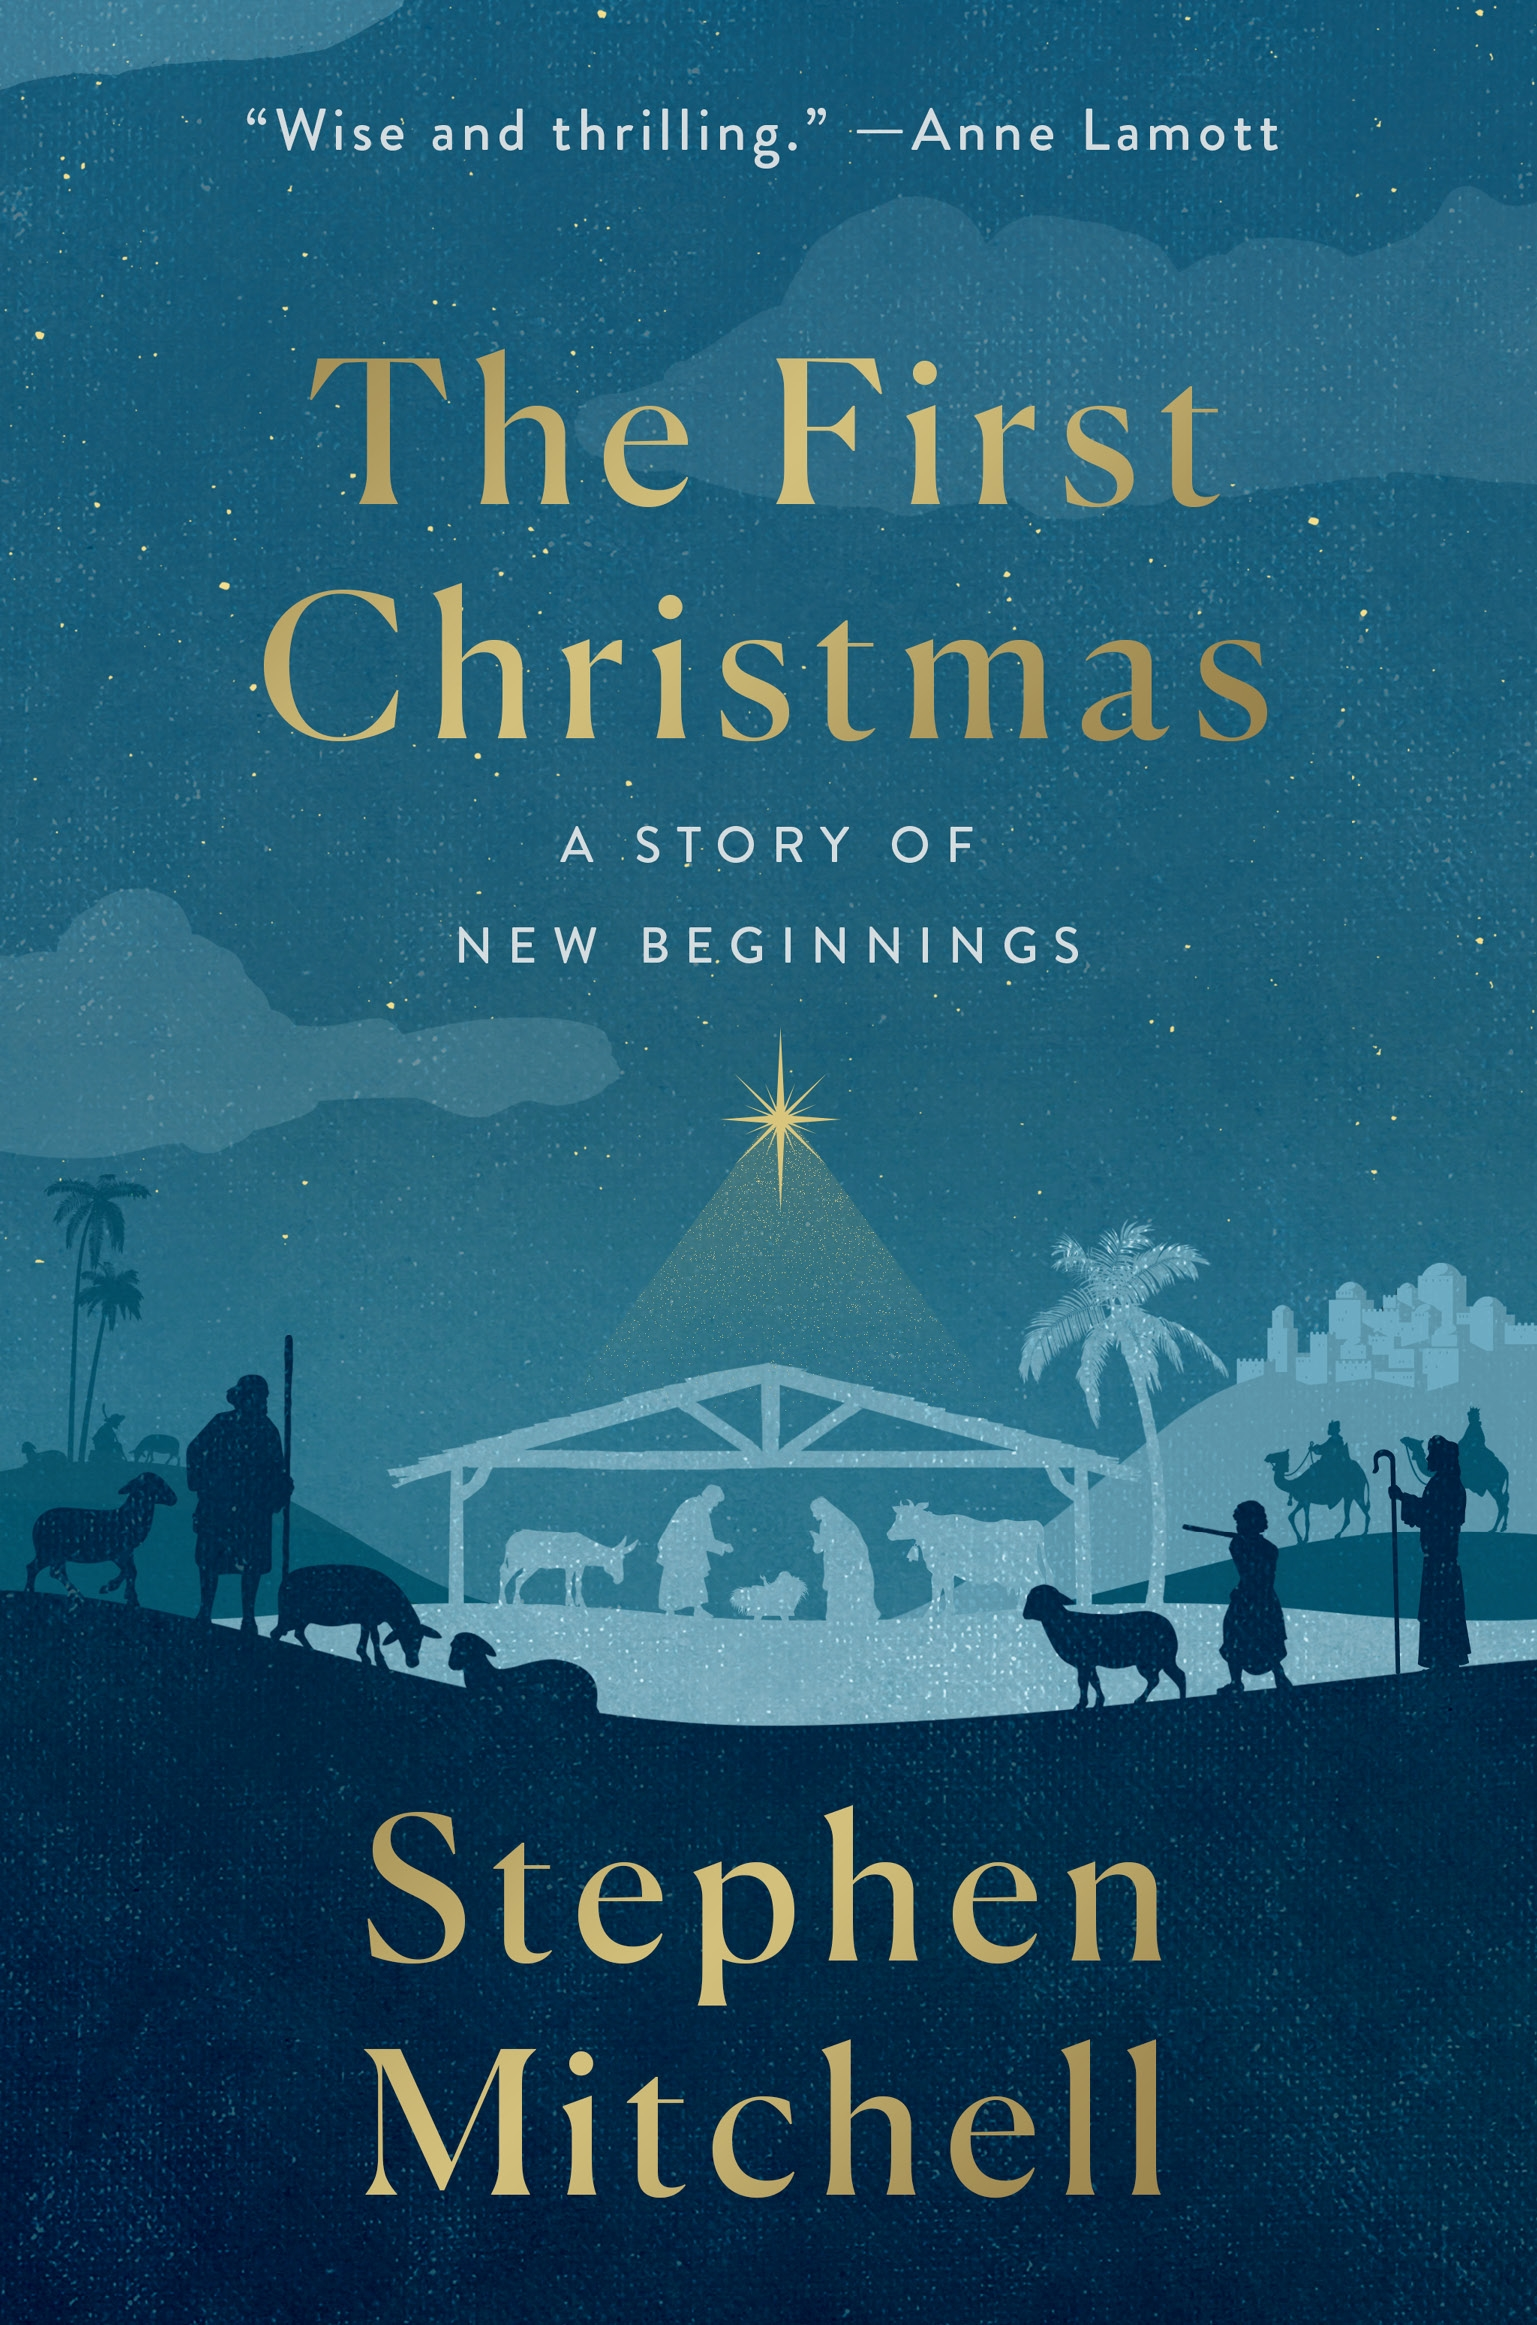 The First Christmas A Story of New Beginnings